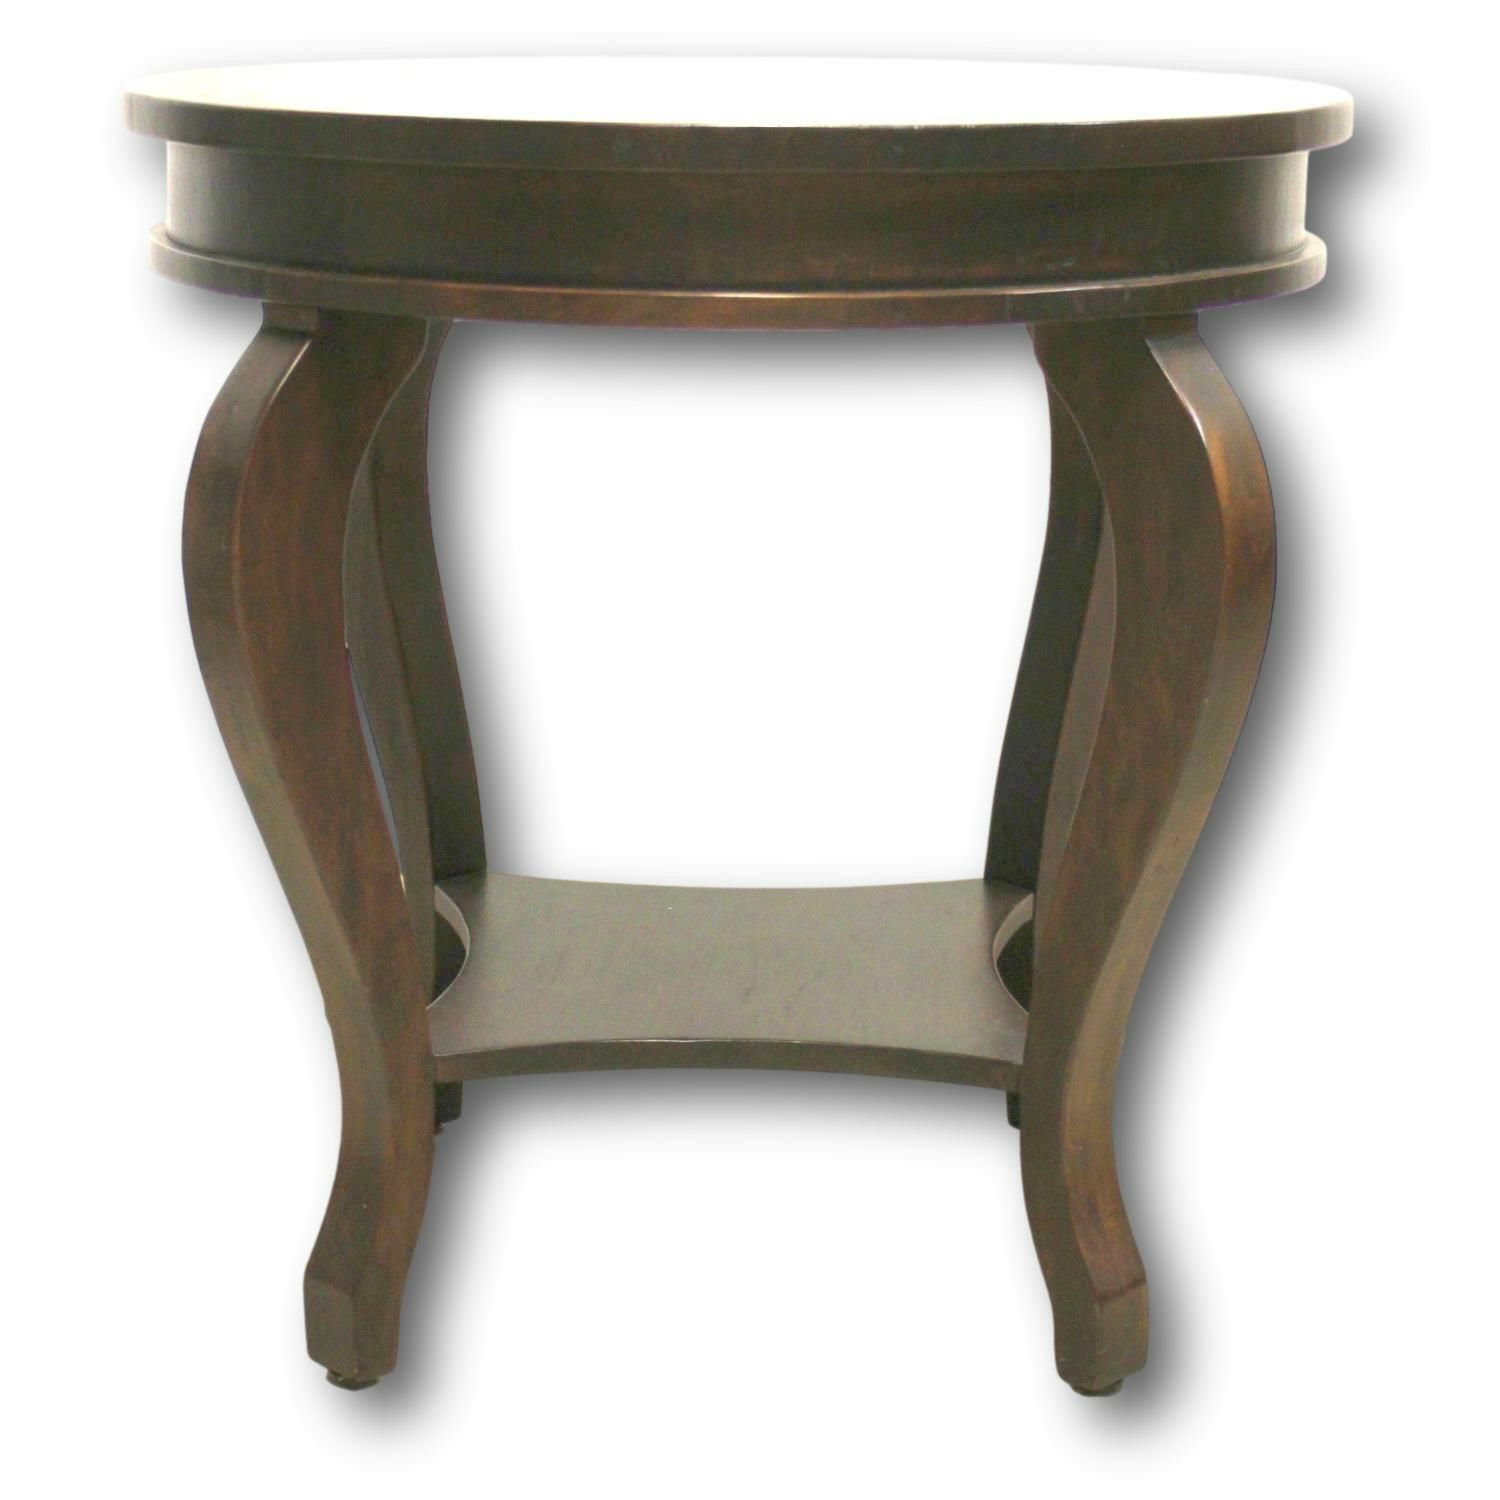 Antigua-Furniture-Round-Wood-Accent-Table_90155A.jpg